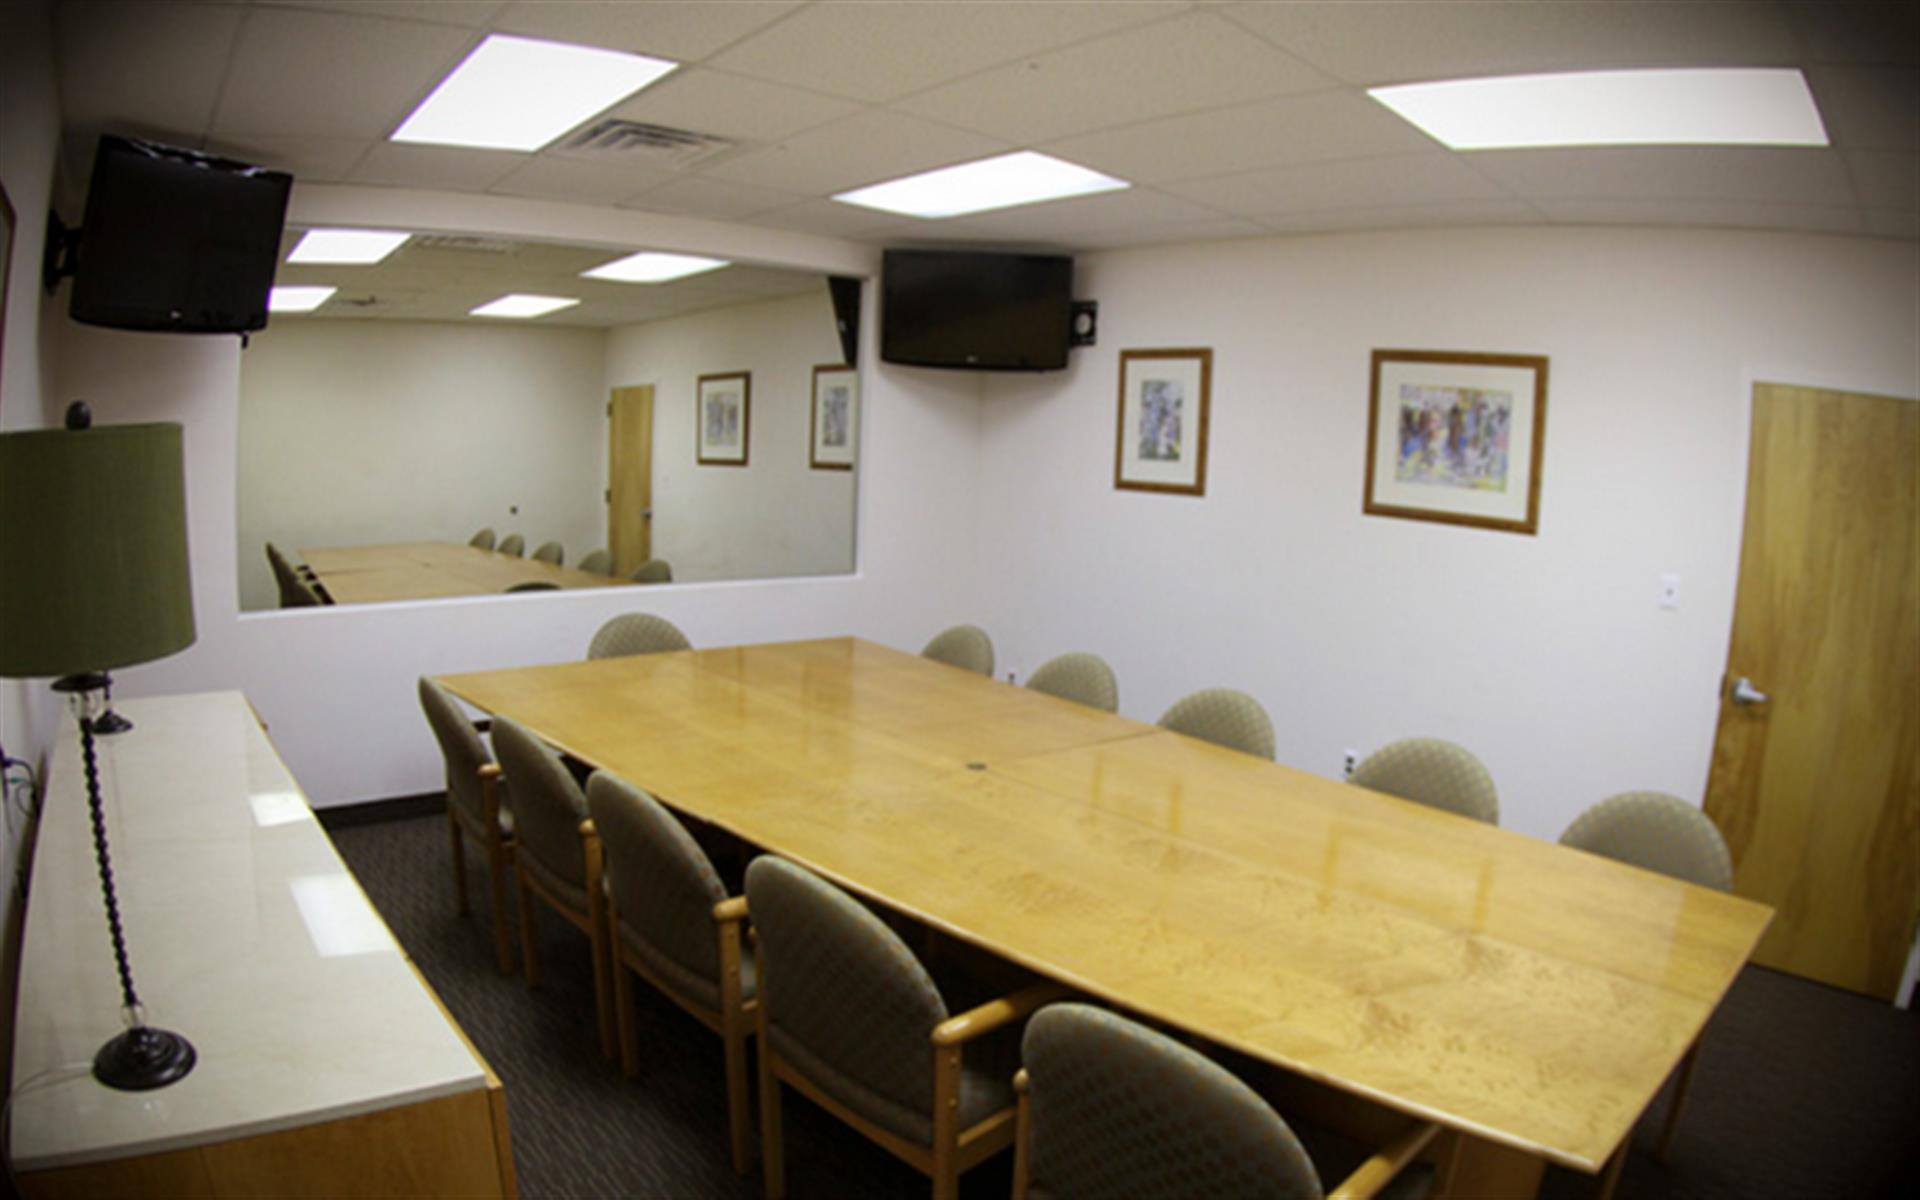 I.C. International - Group Focus & Viewing Room